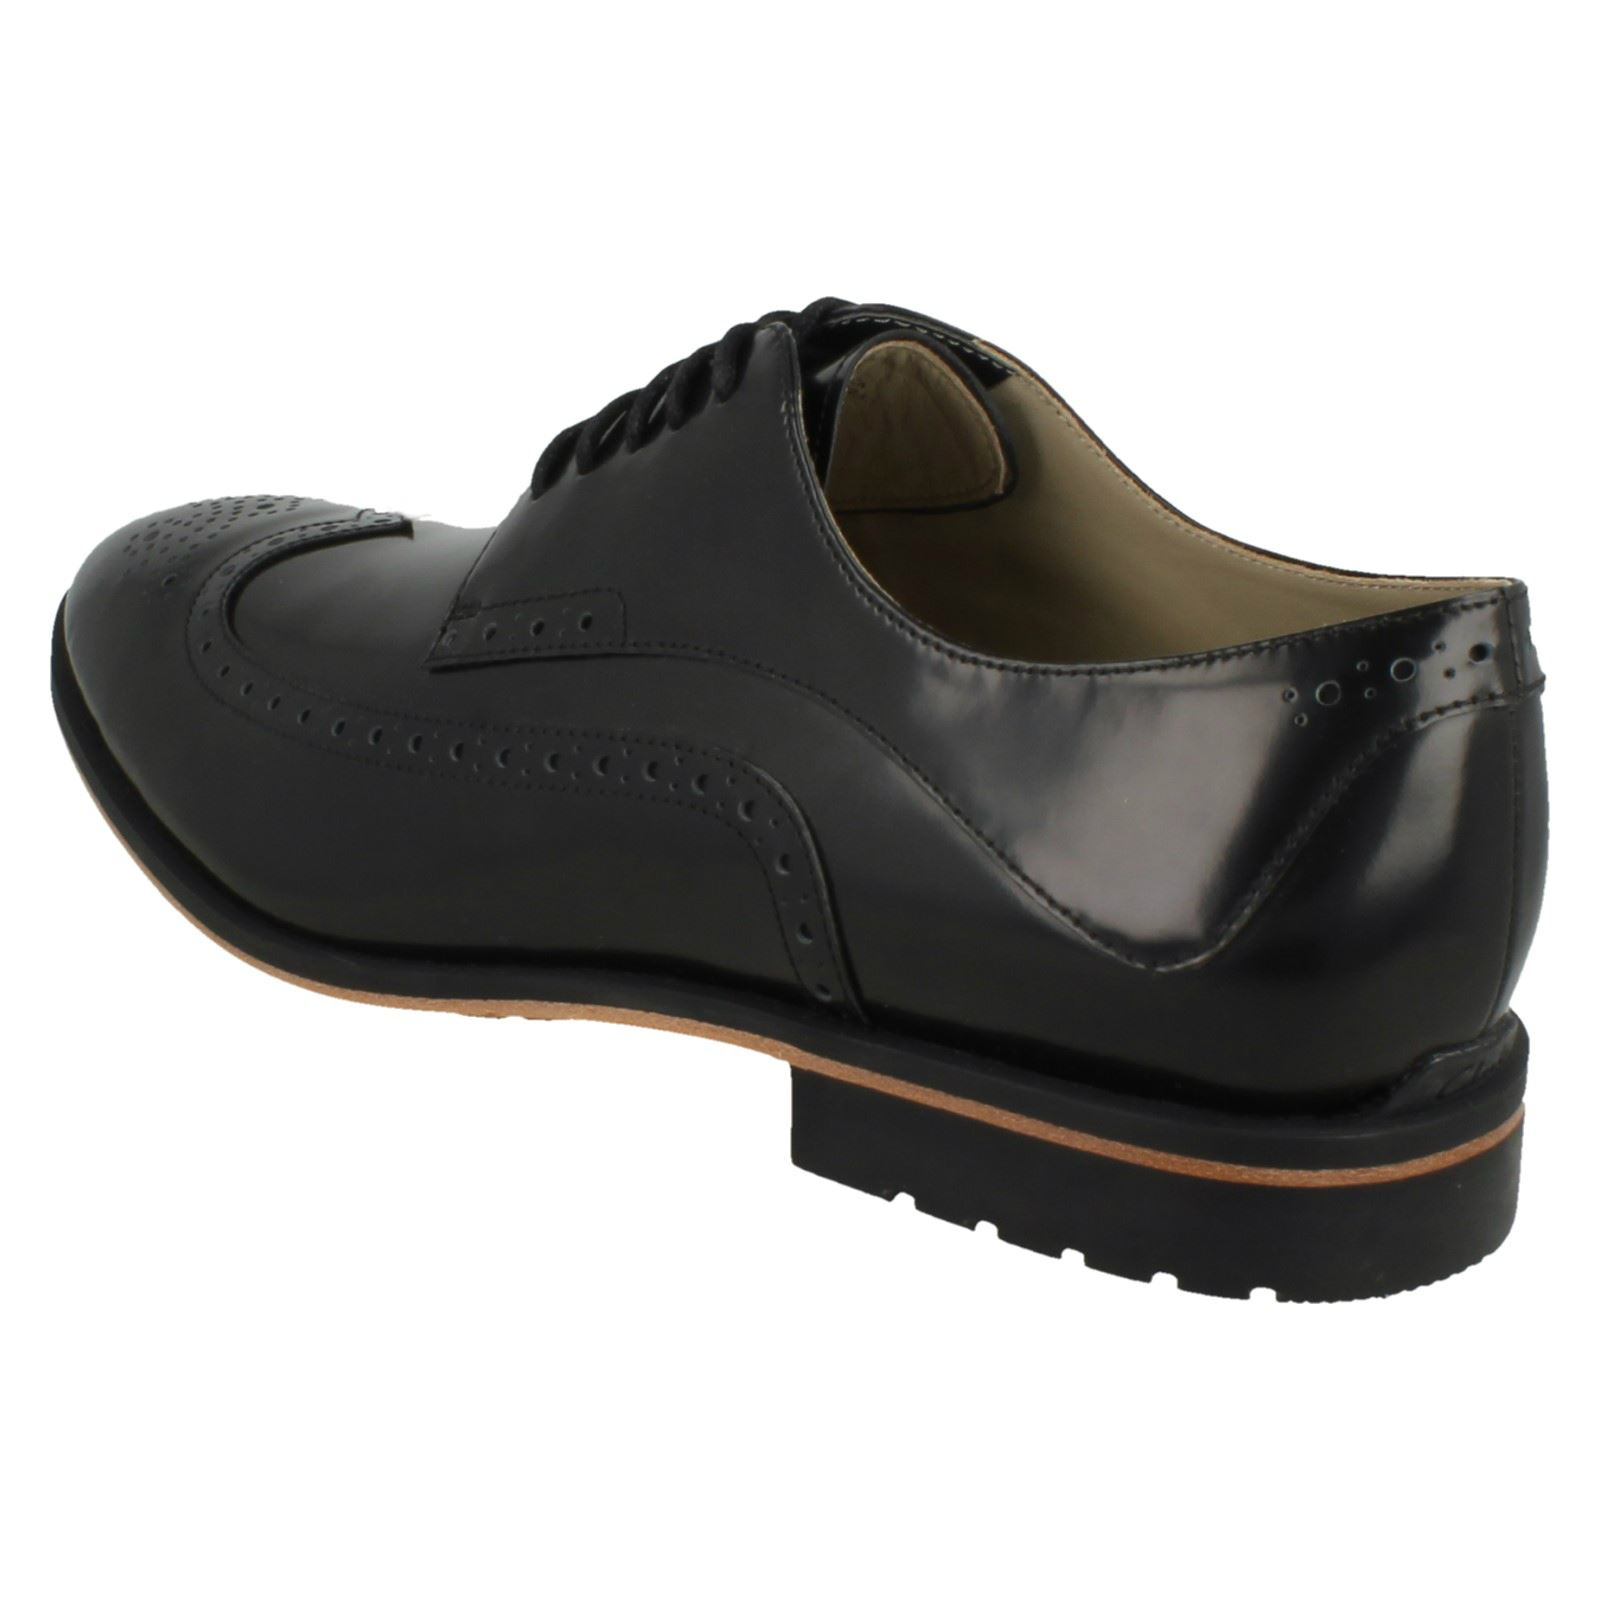 Smart Negro Limit' 'gatley Brogues Hombres Clarks 6wa5Y